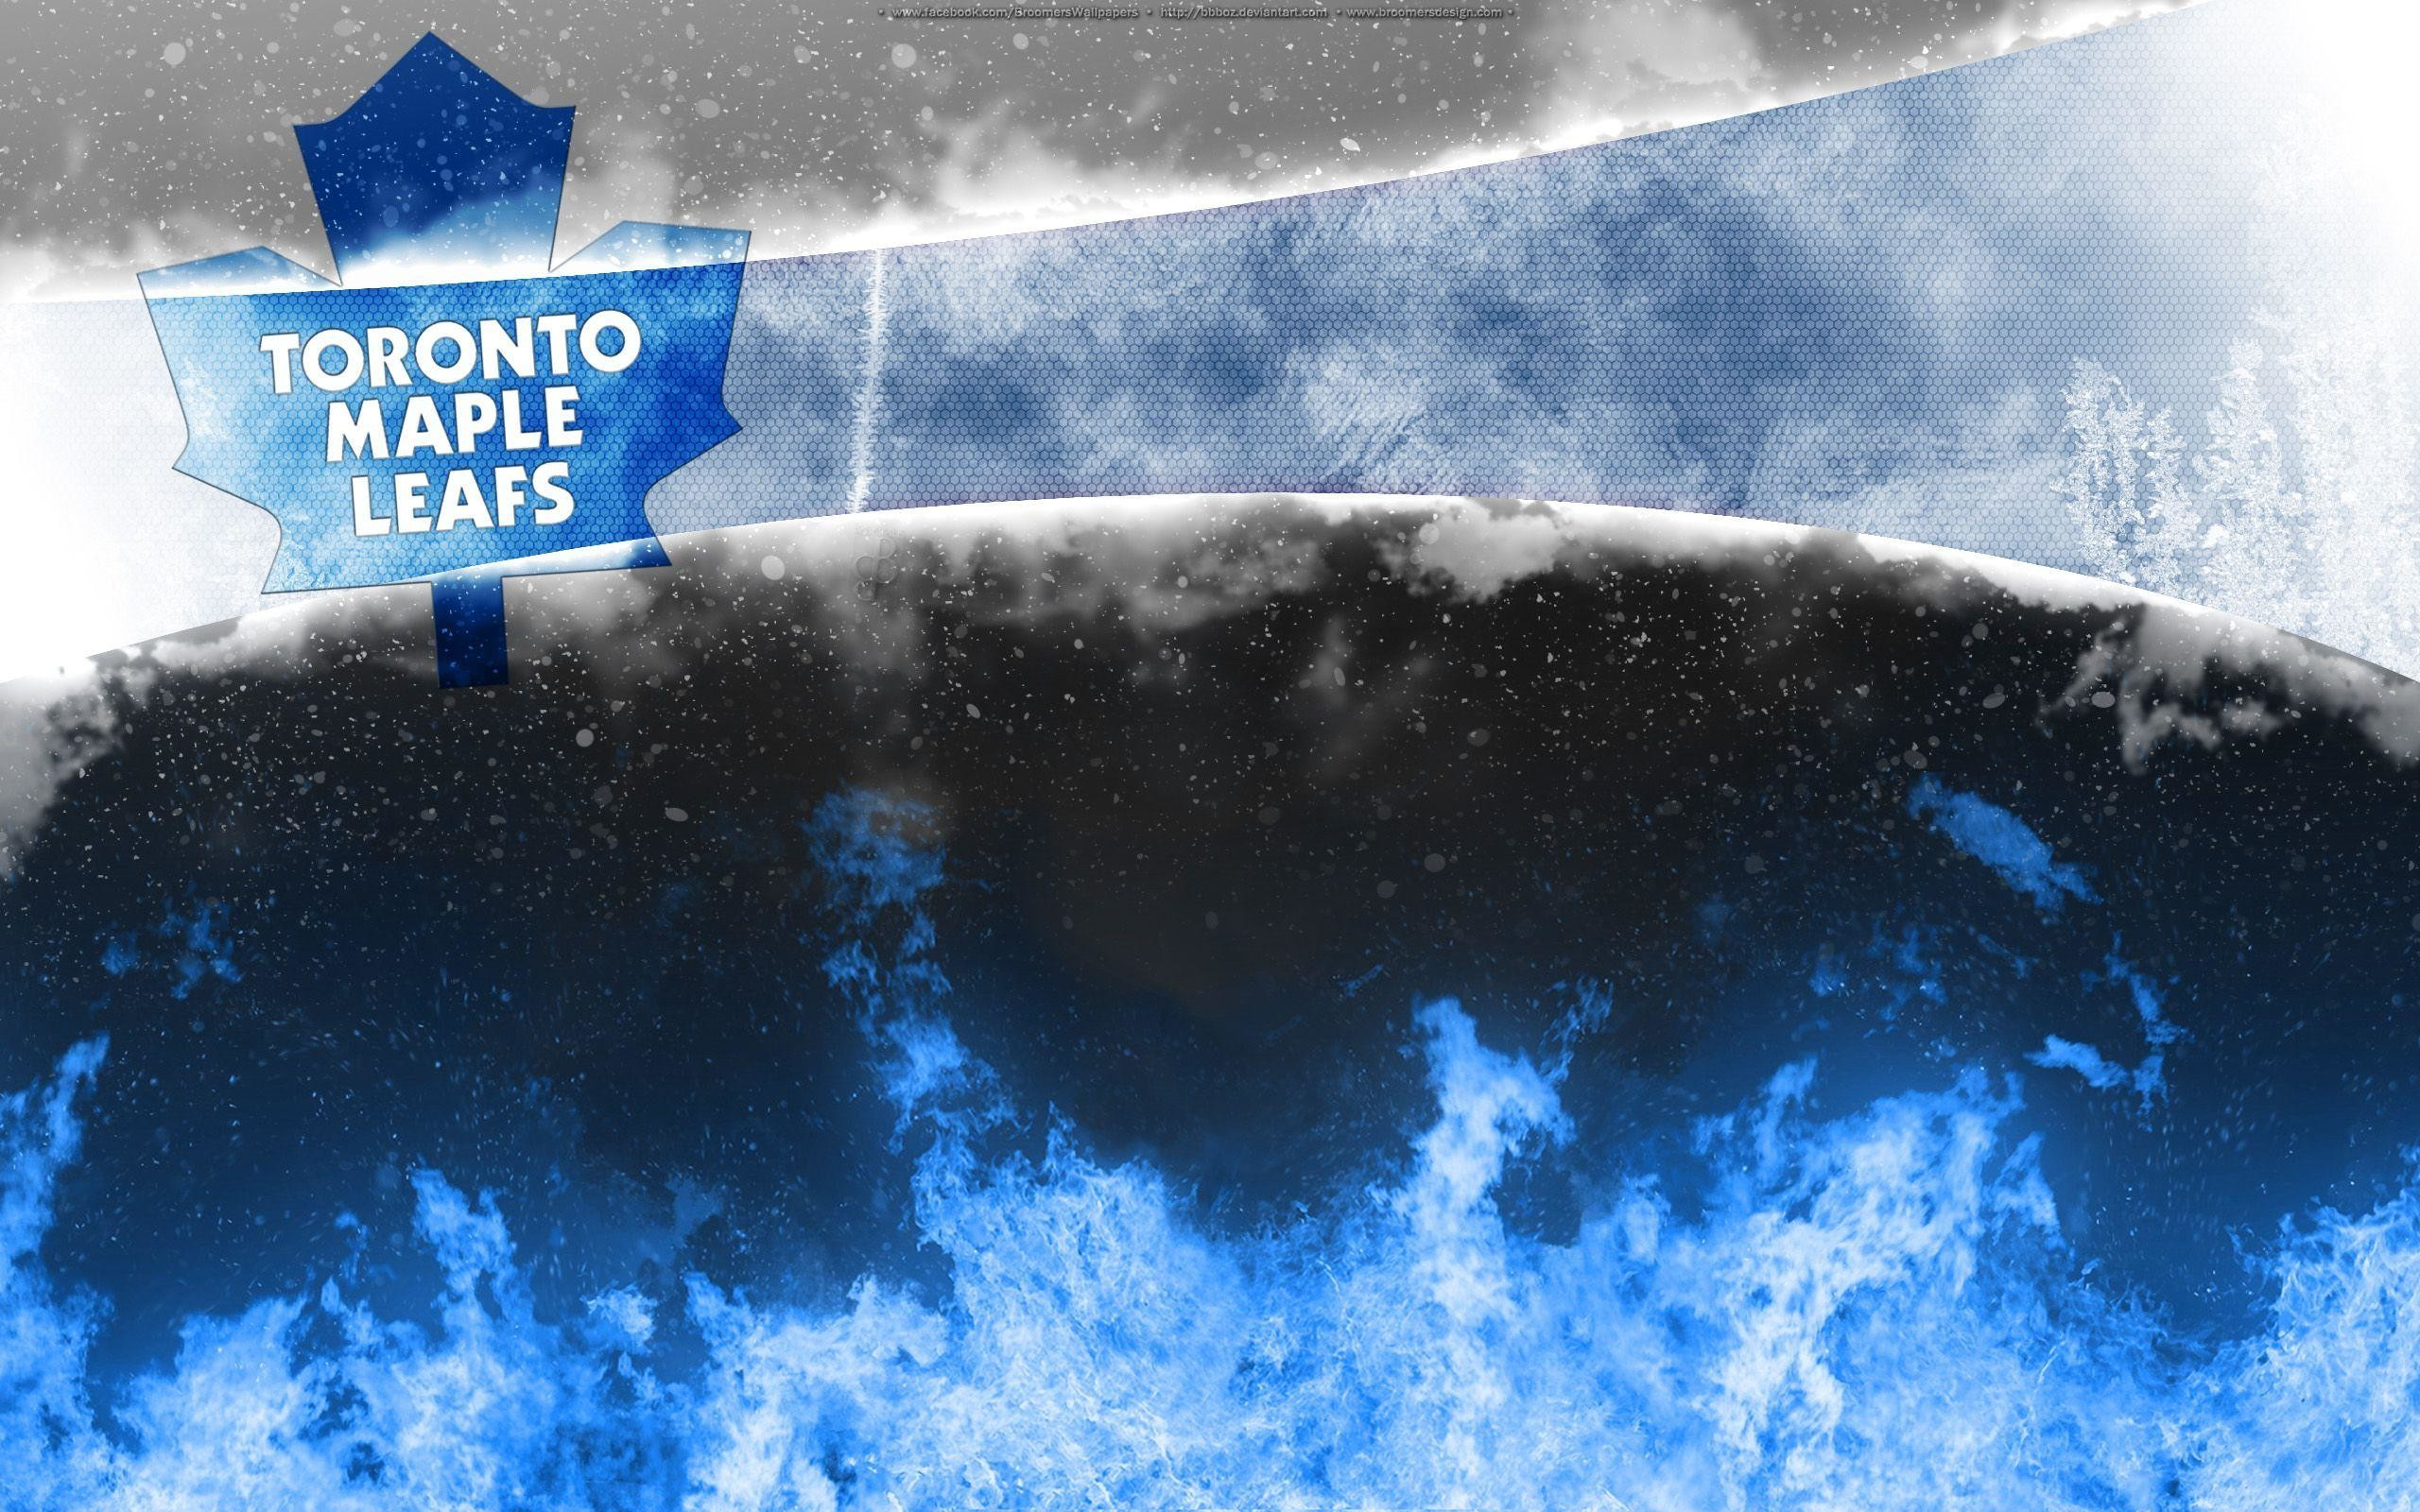 2560x1600 Toronto Maple Leafs 2016 Wallpapers - Wallpaper Cave